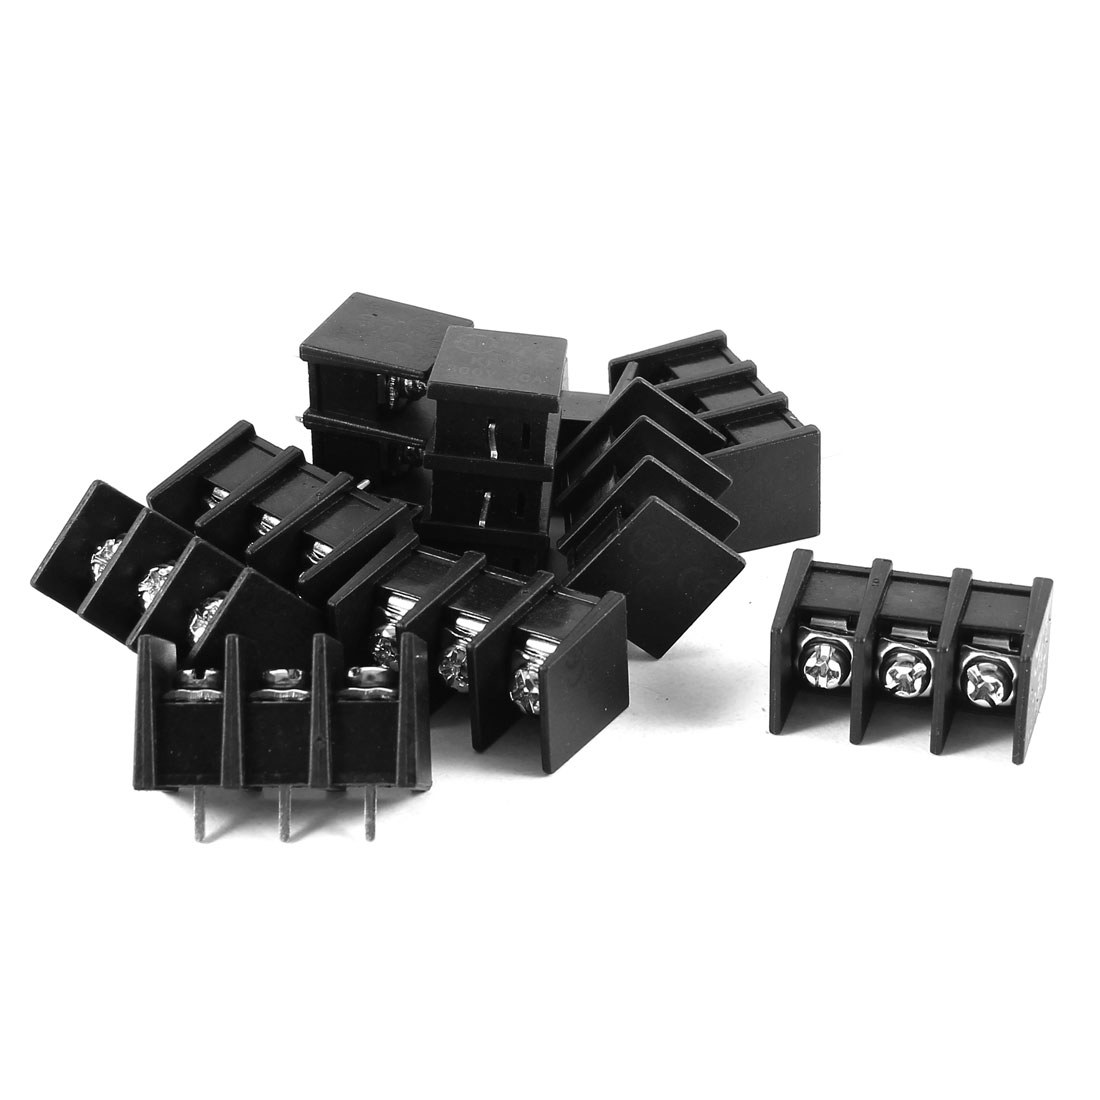 10 Pcs KF35C-3P 3 Position 8.25mm Pitch Wire Connector Screw Terminal Barrier Blocks 300V 20A